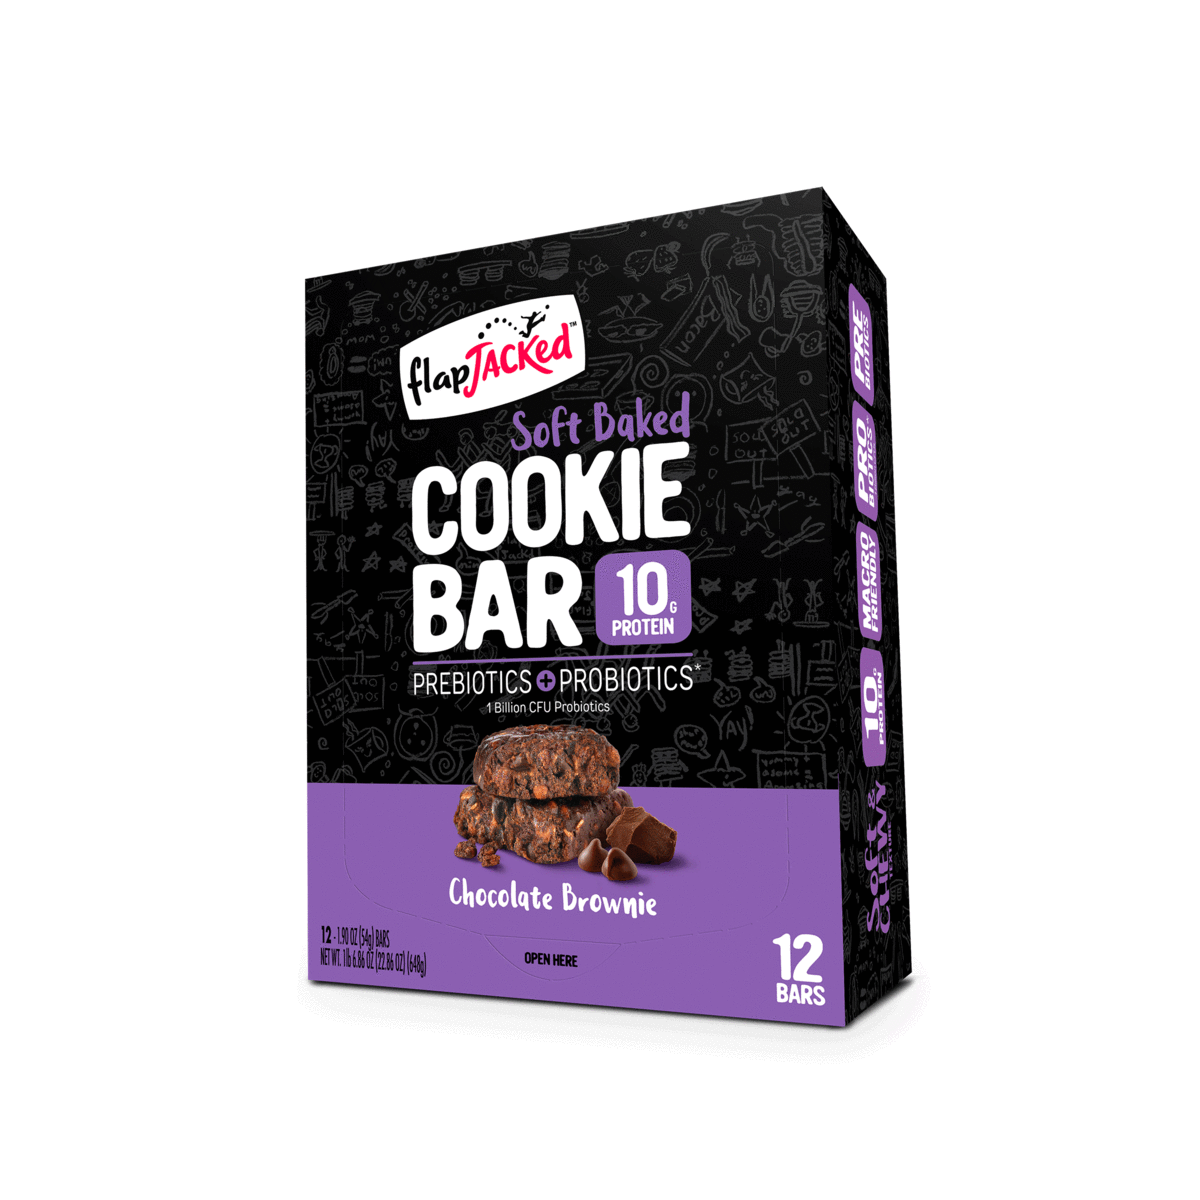 Chocolate Brownie Cookie Bar - 12 Pack